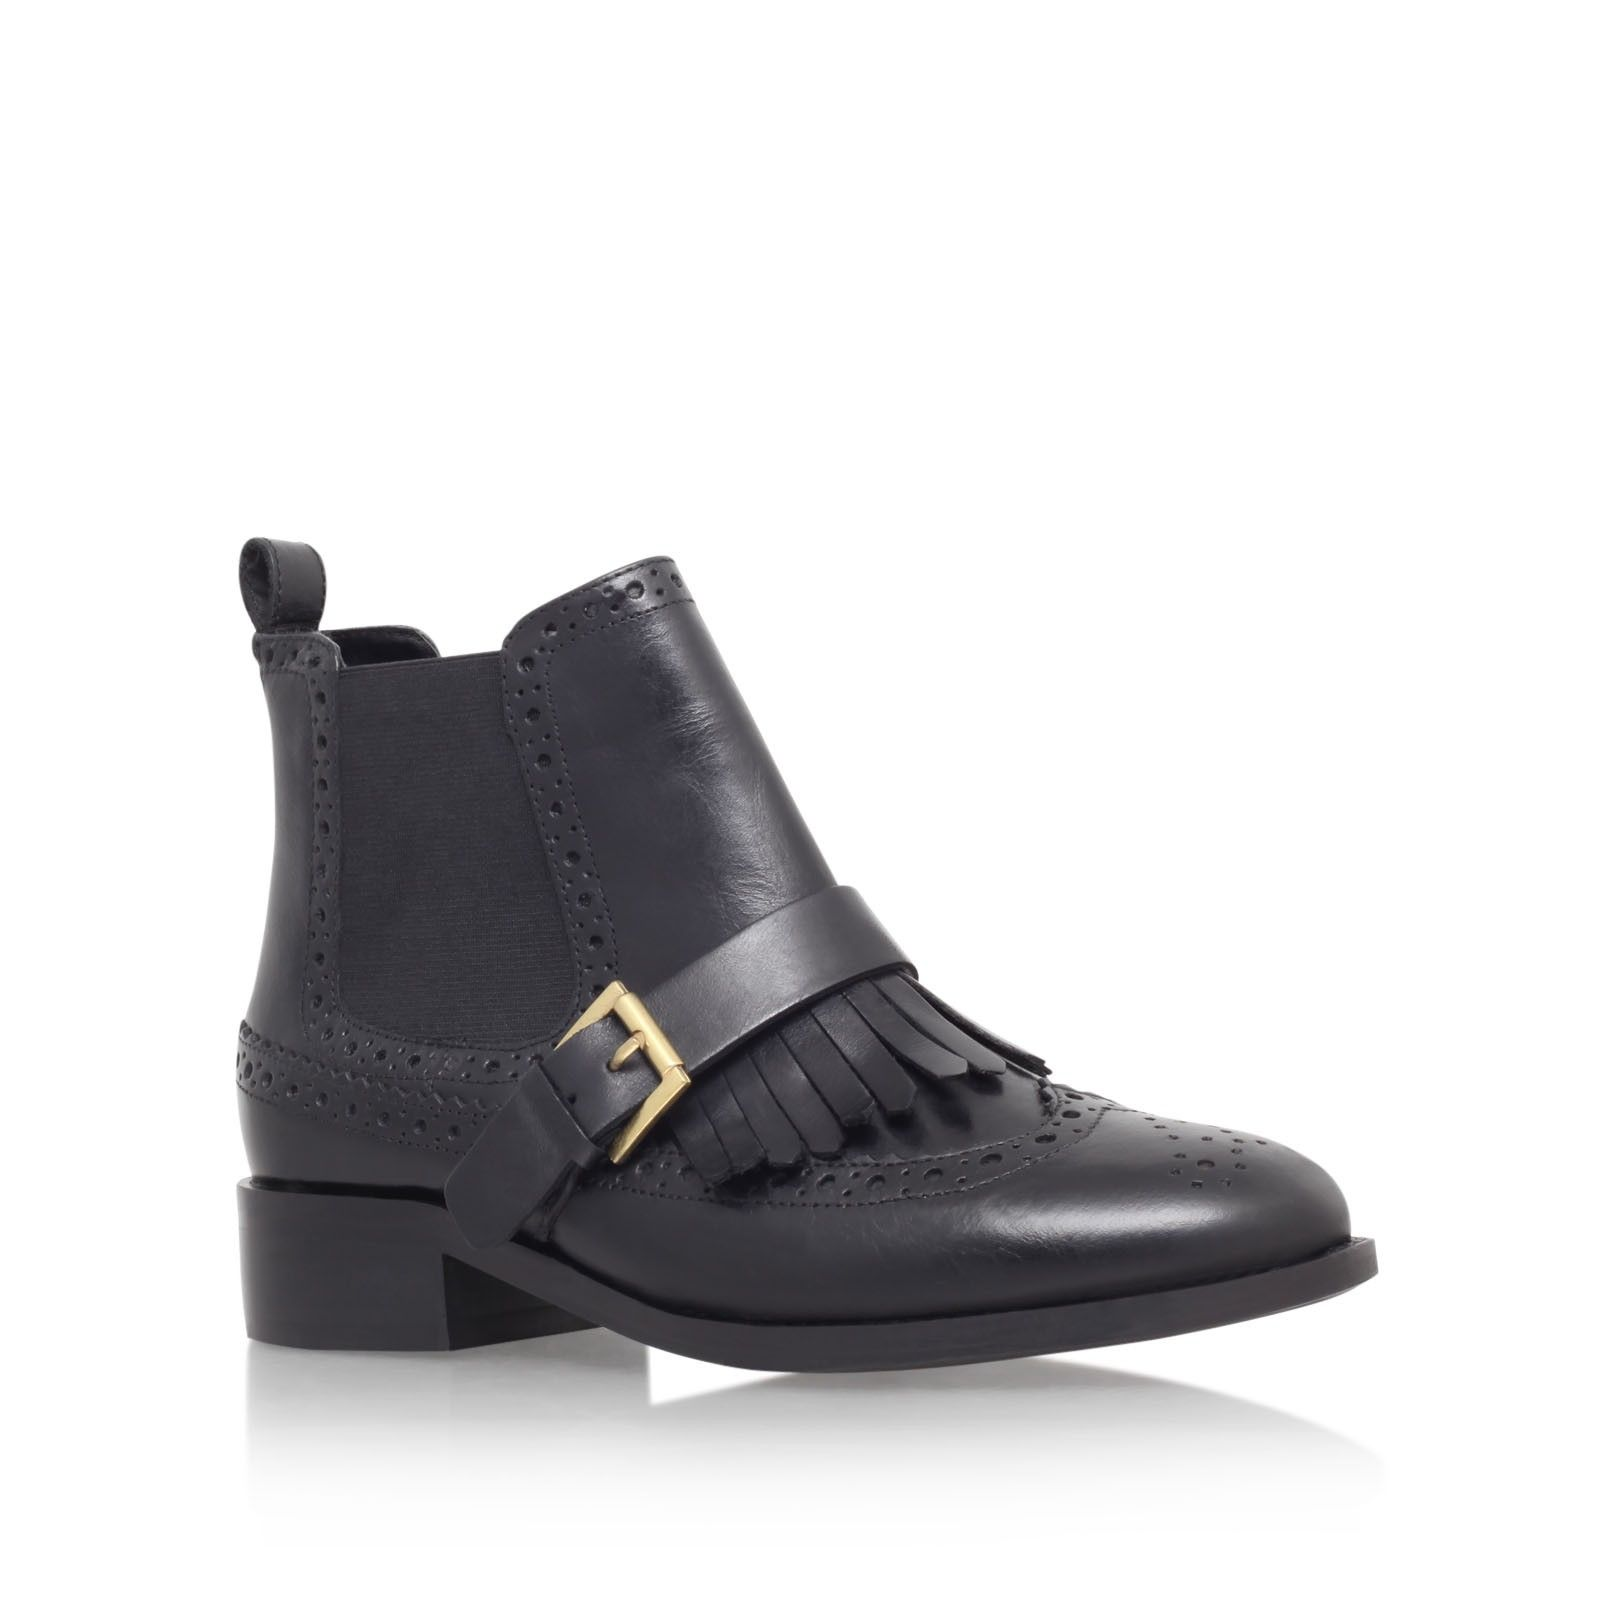 Stirling Black Low Heel Ankle Boots From Miss Kg Chelsea Boots Women Boots Womens Ankle Boots